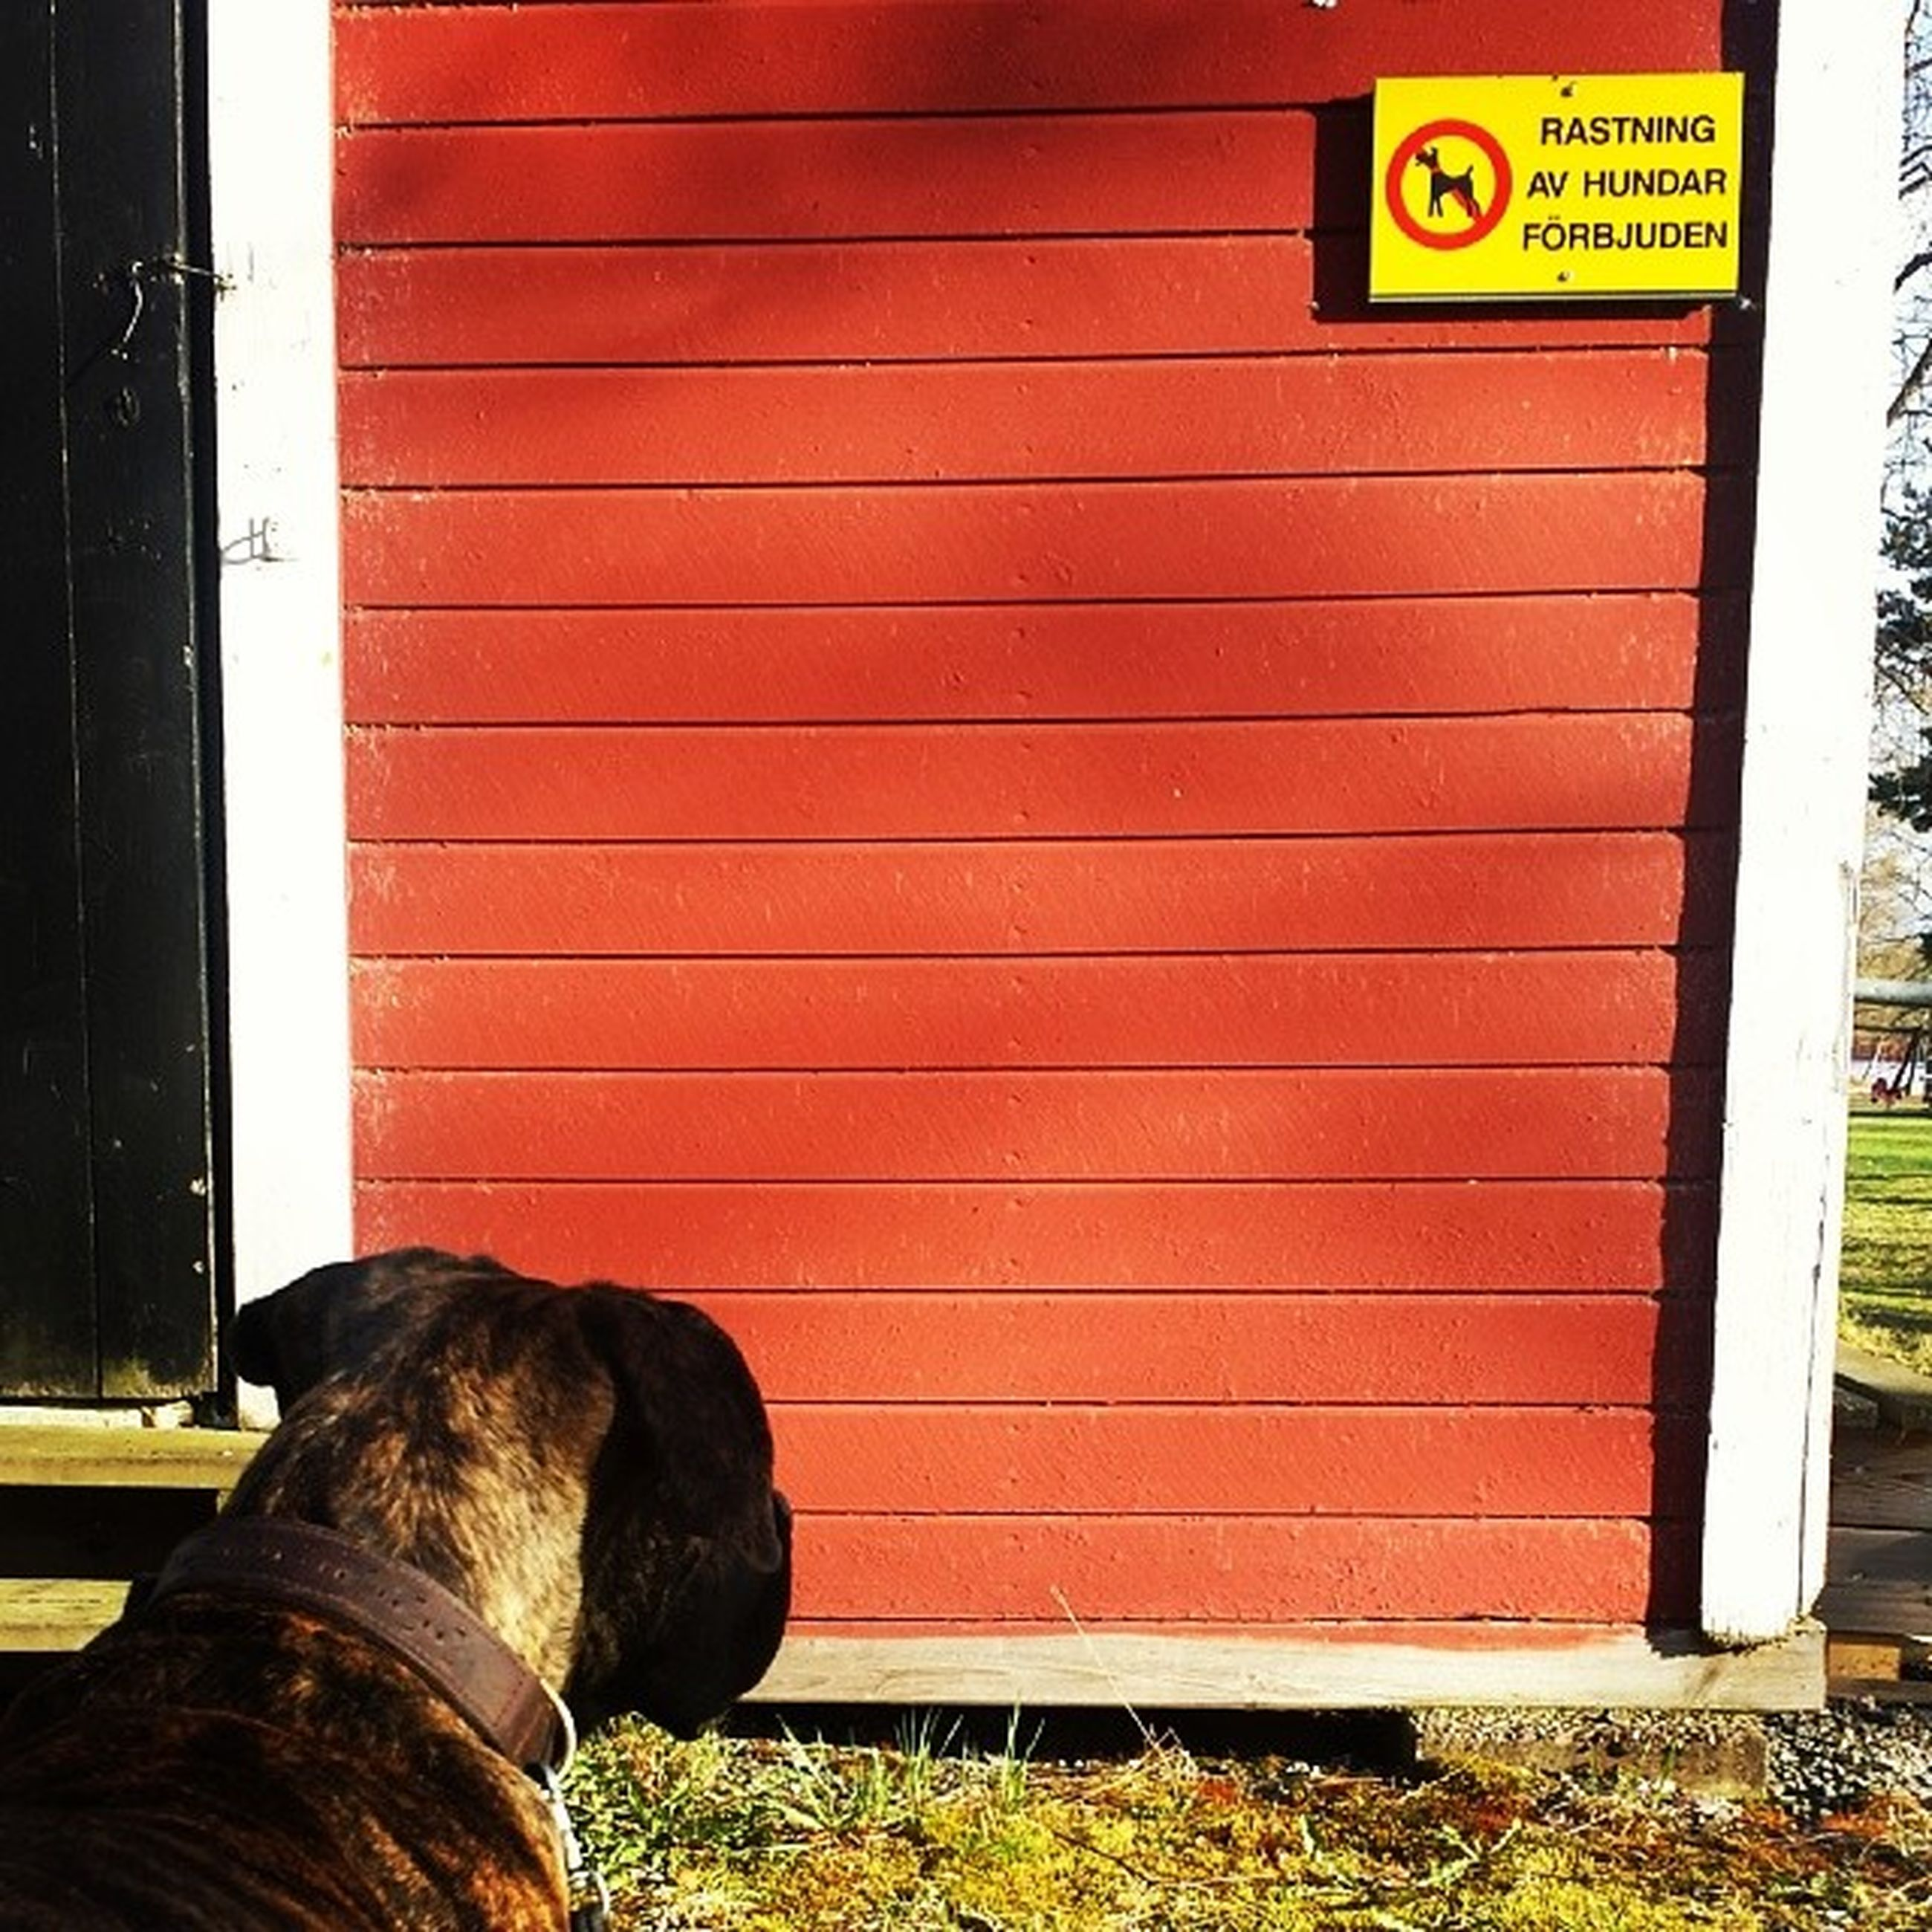 domestic animals, animal themes, mammal, one animal, pets, text, communication, dog, western script, door, closed, building exterior, red, built structure, outdoors, safety, day, wall - building feature, architecture, information sign